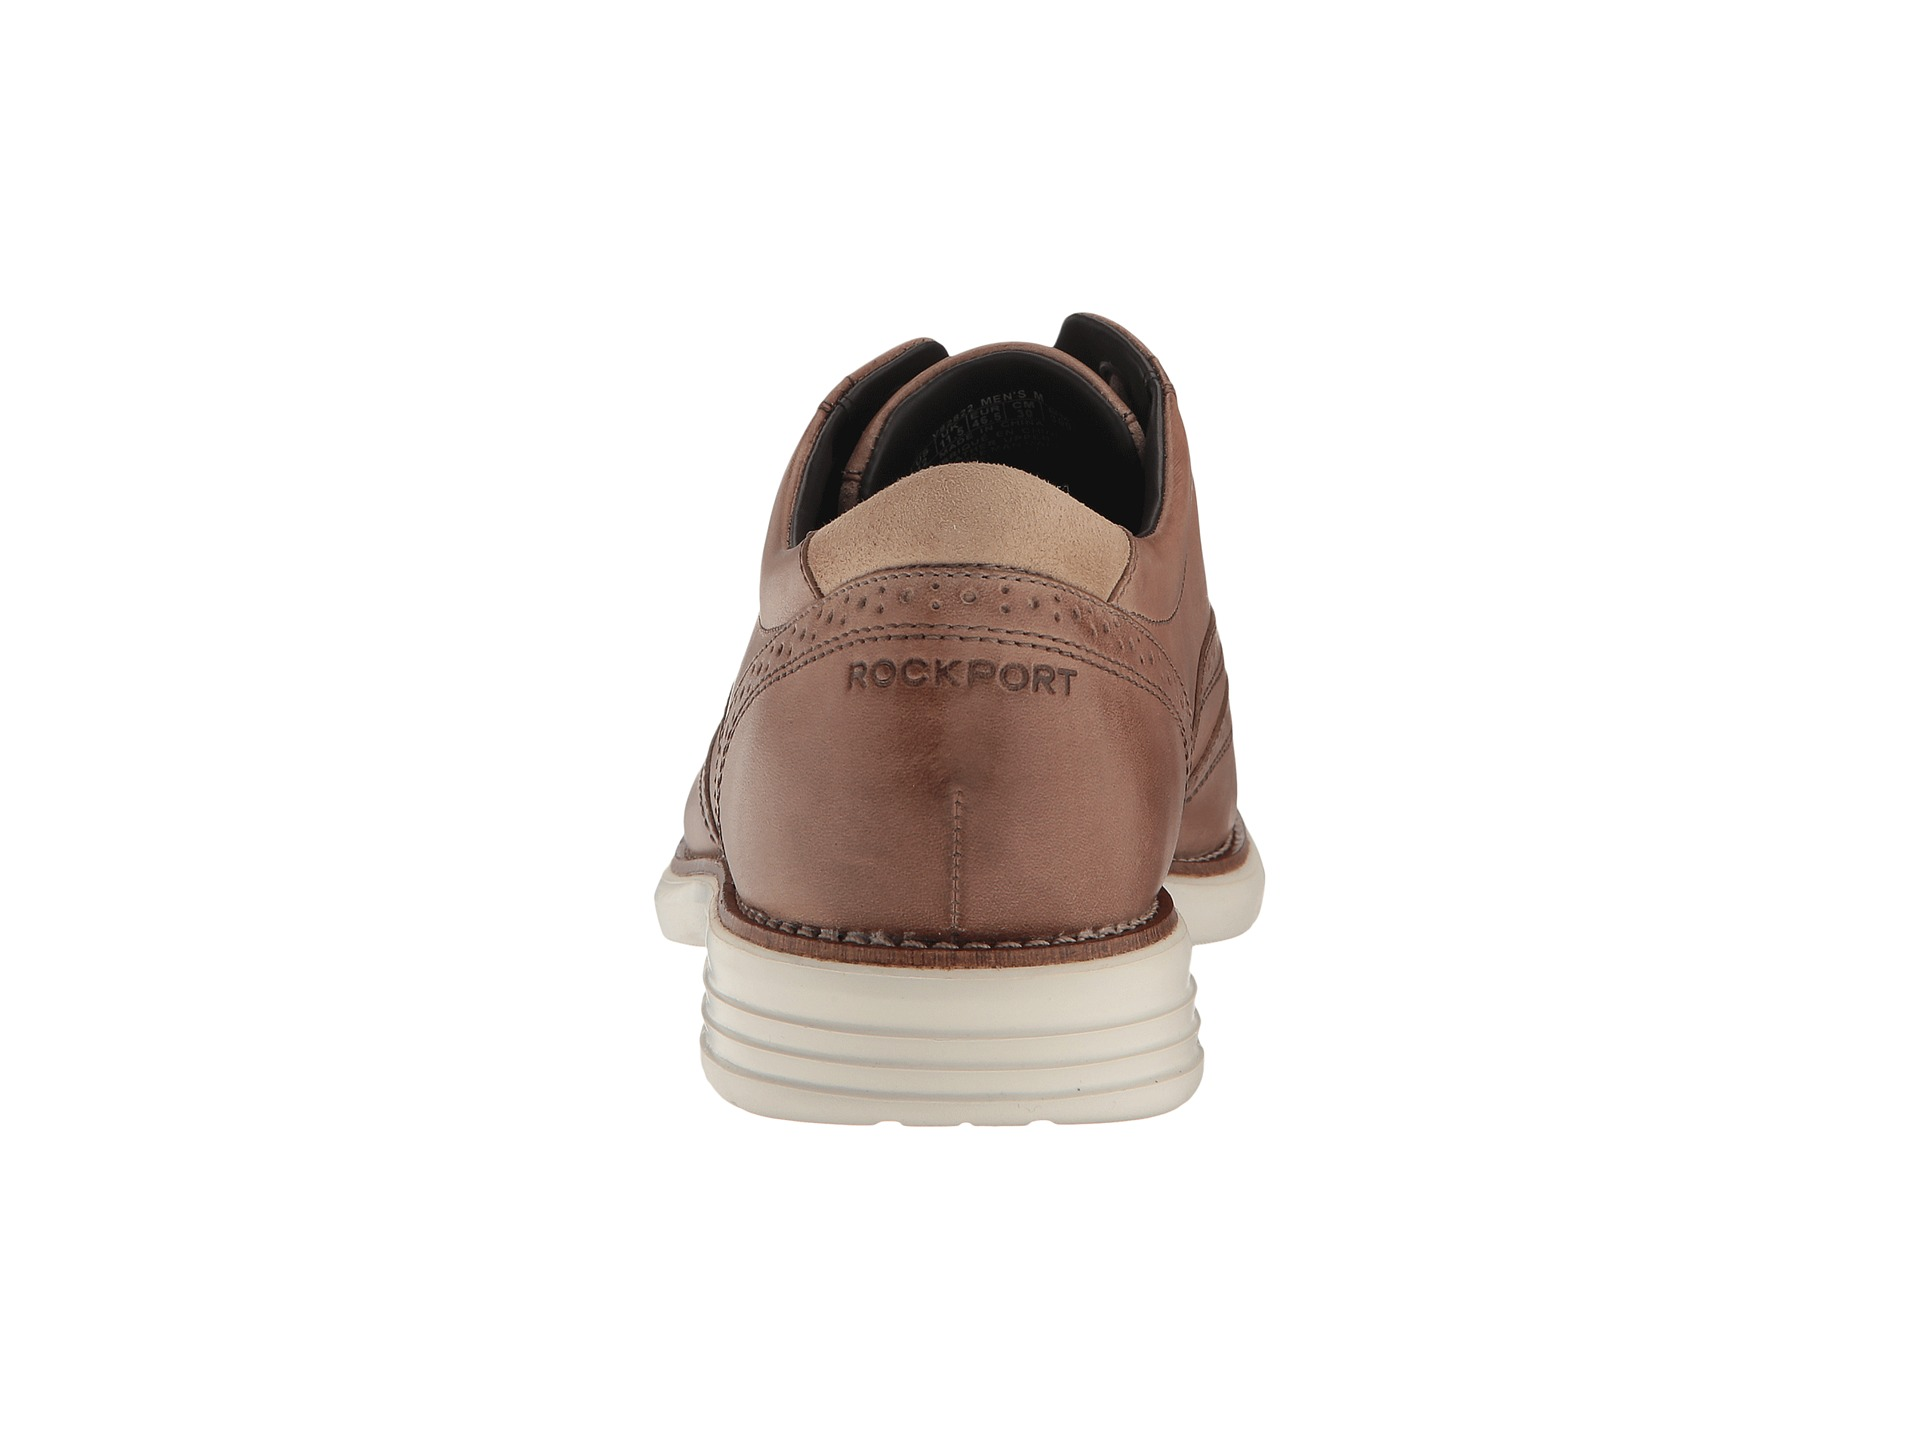 Rockport Total Motion Fusion Wing Tip at free shipping